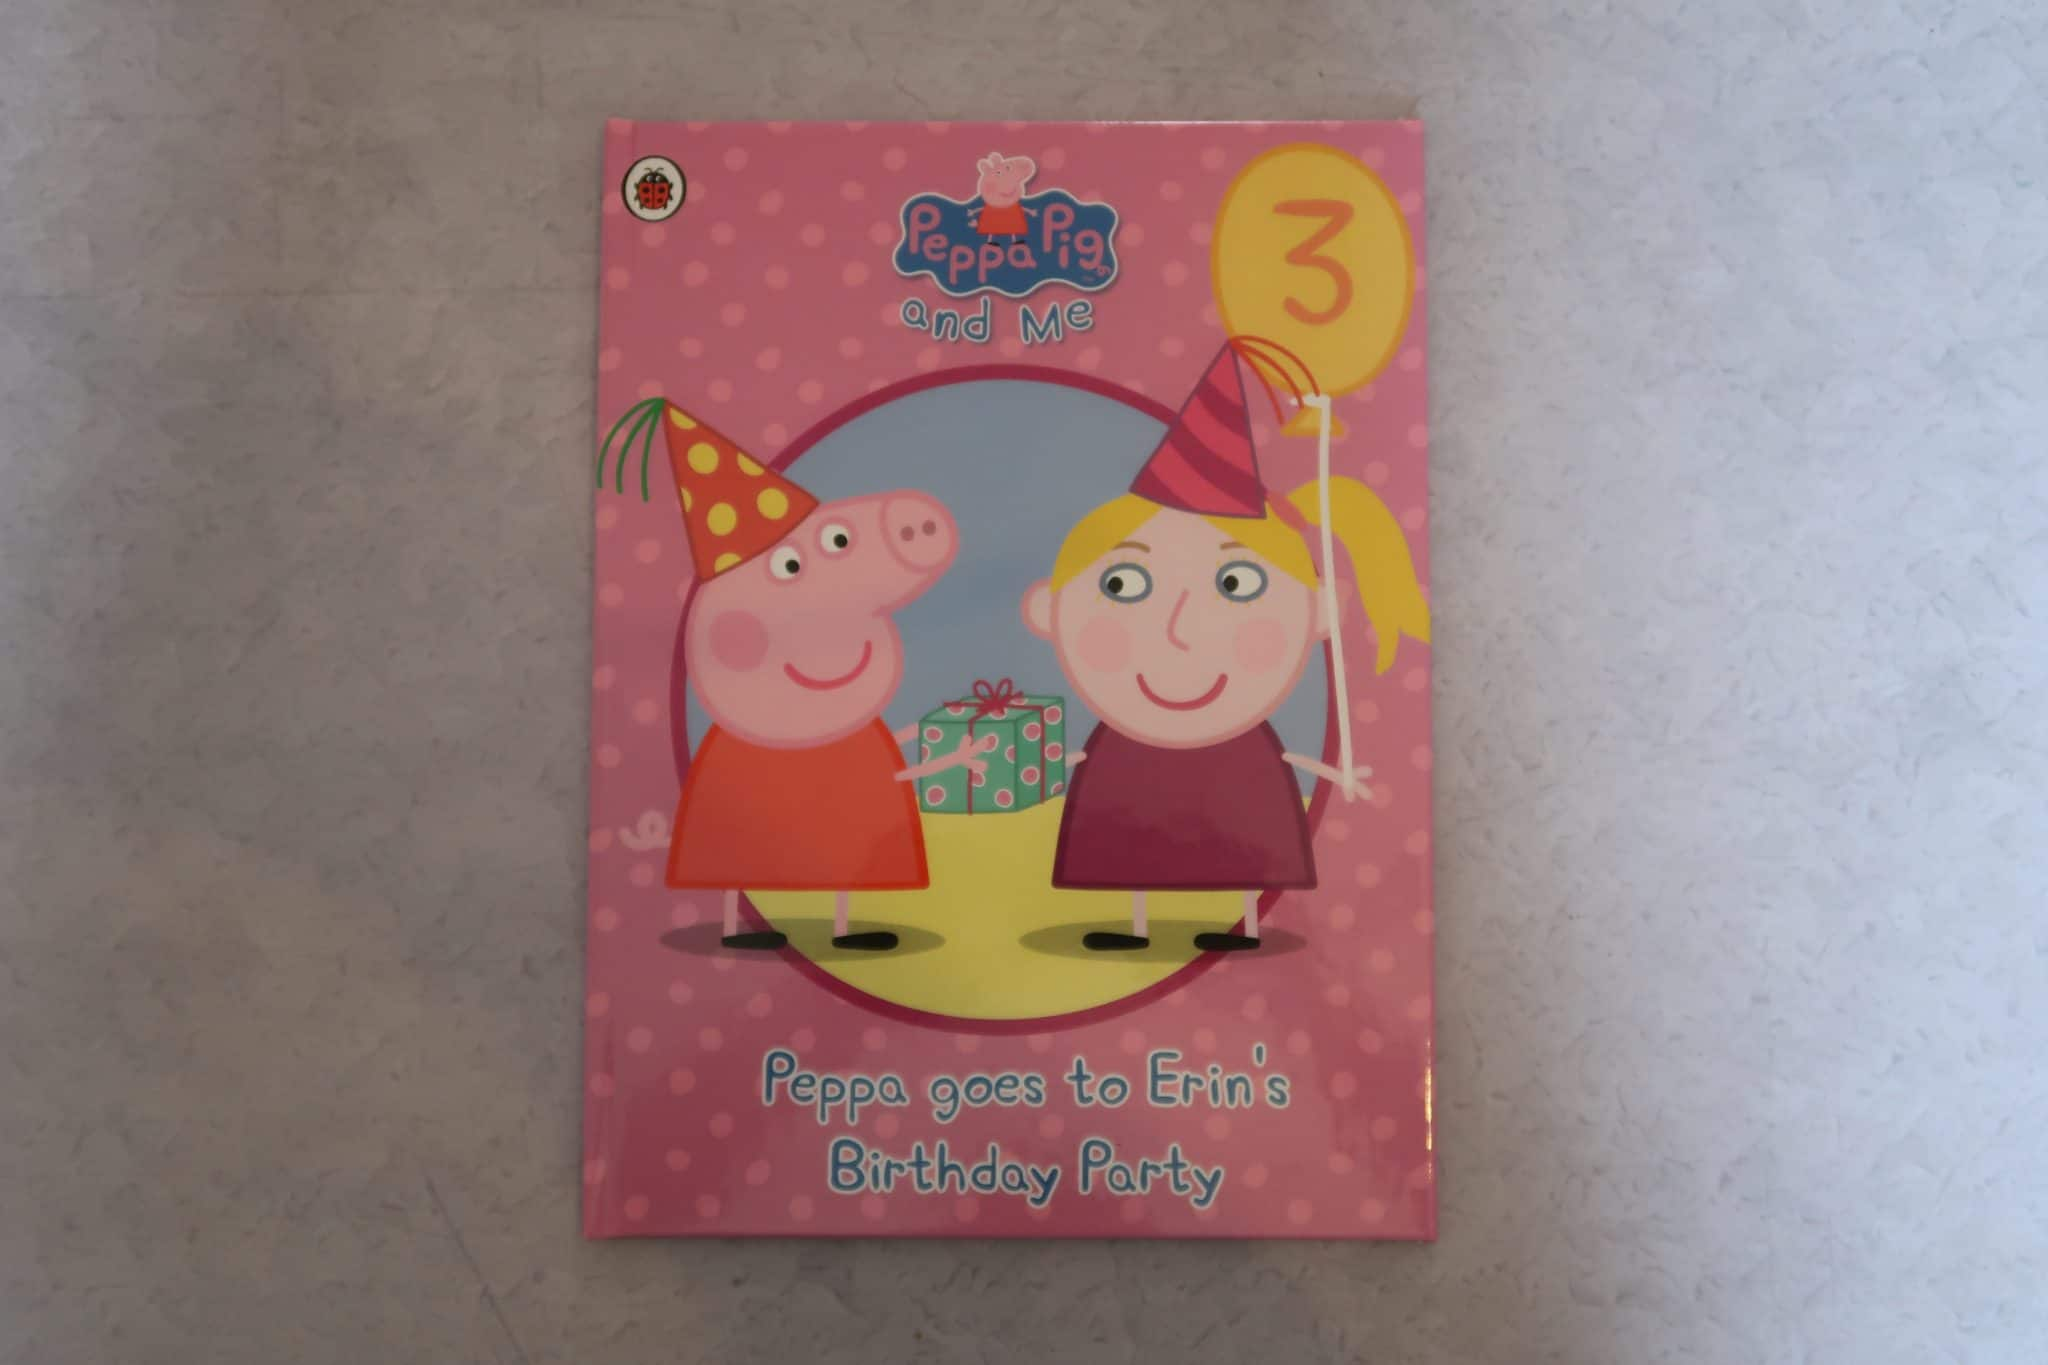 Personalised Peppa Pig Party Book from Penwizard